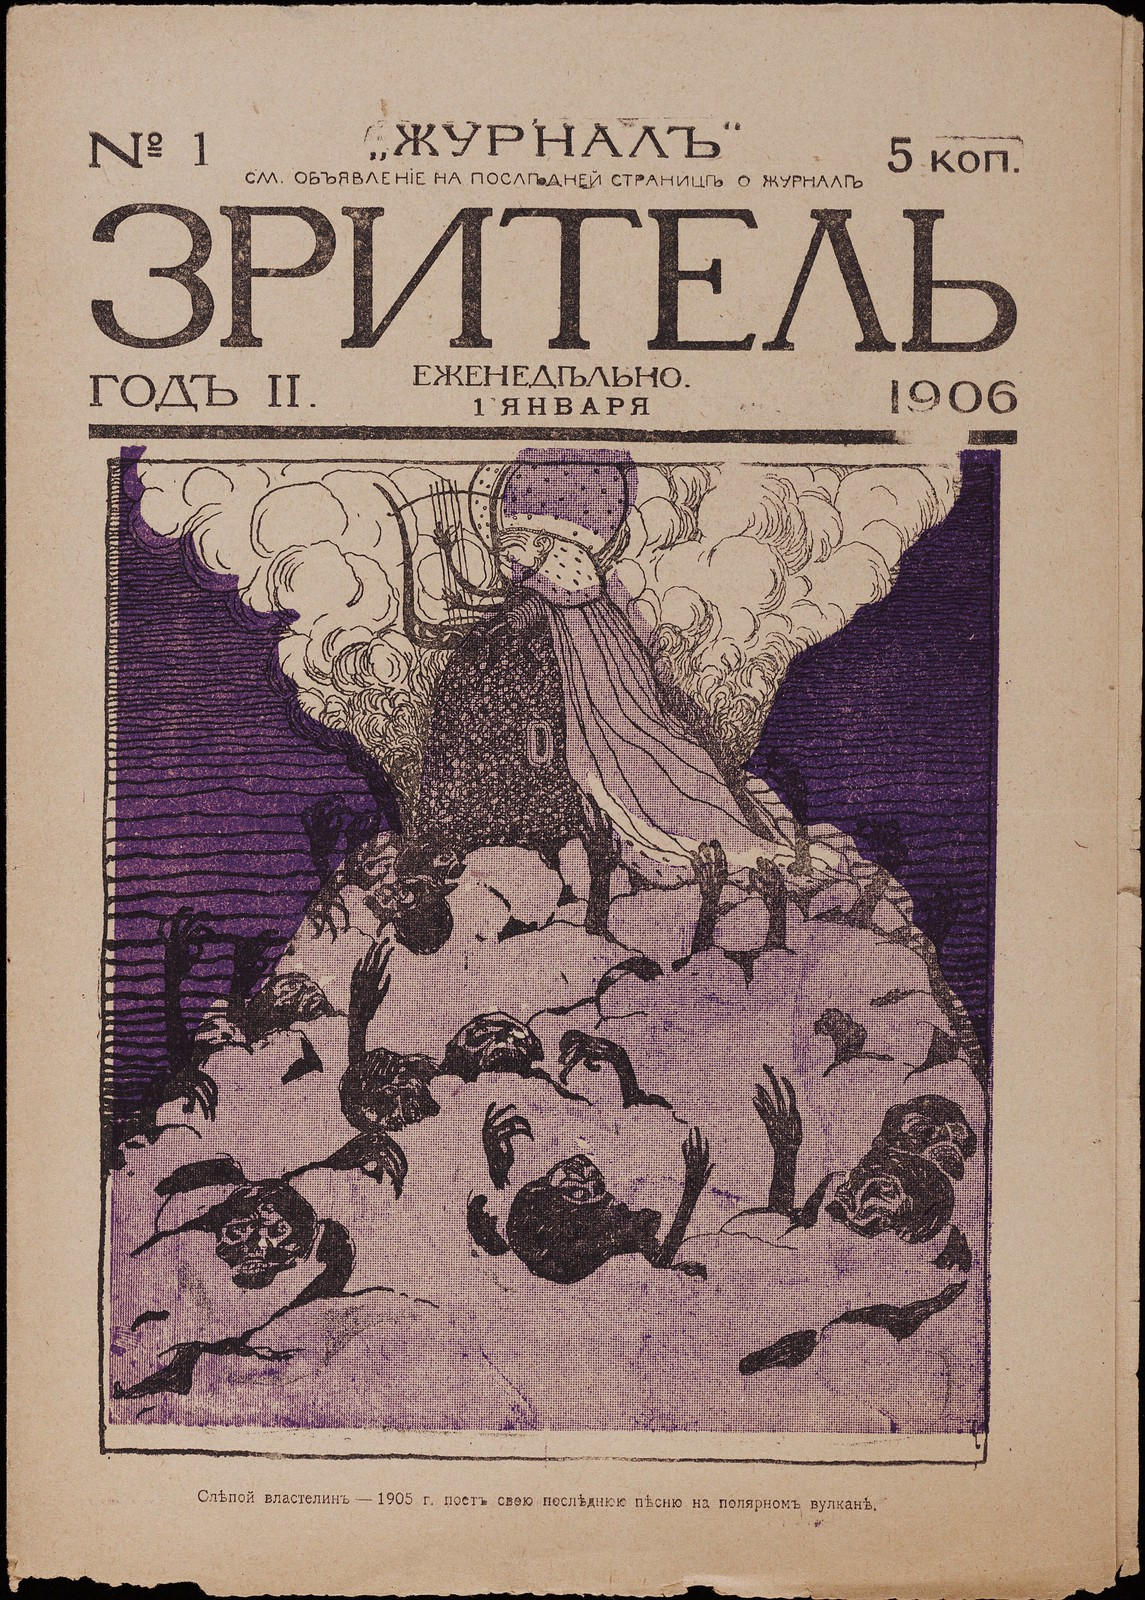 Zhurnal, Issue 1, 1906